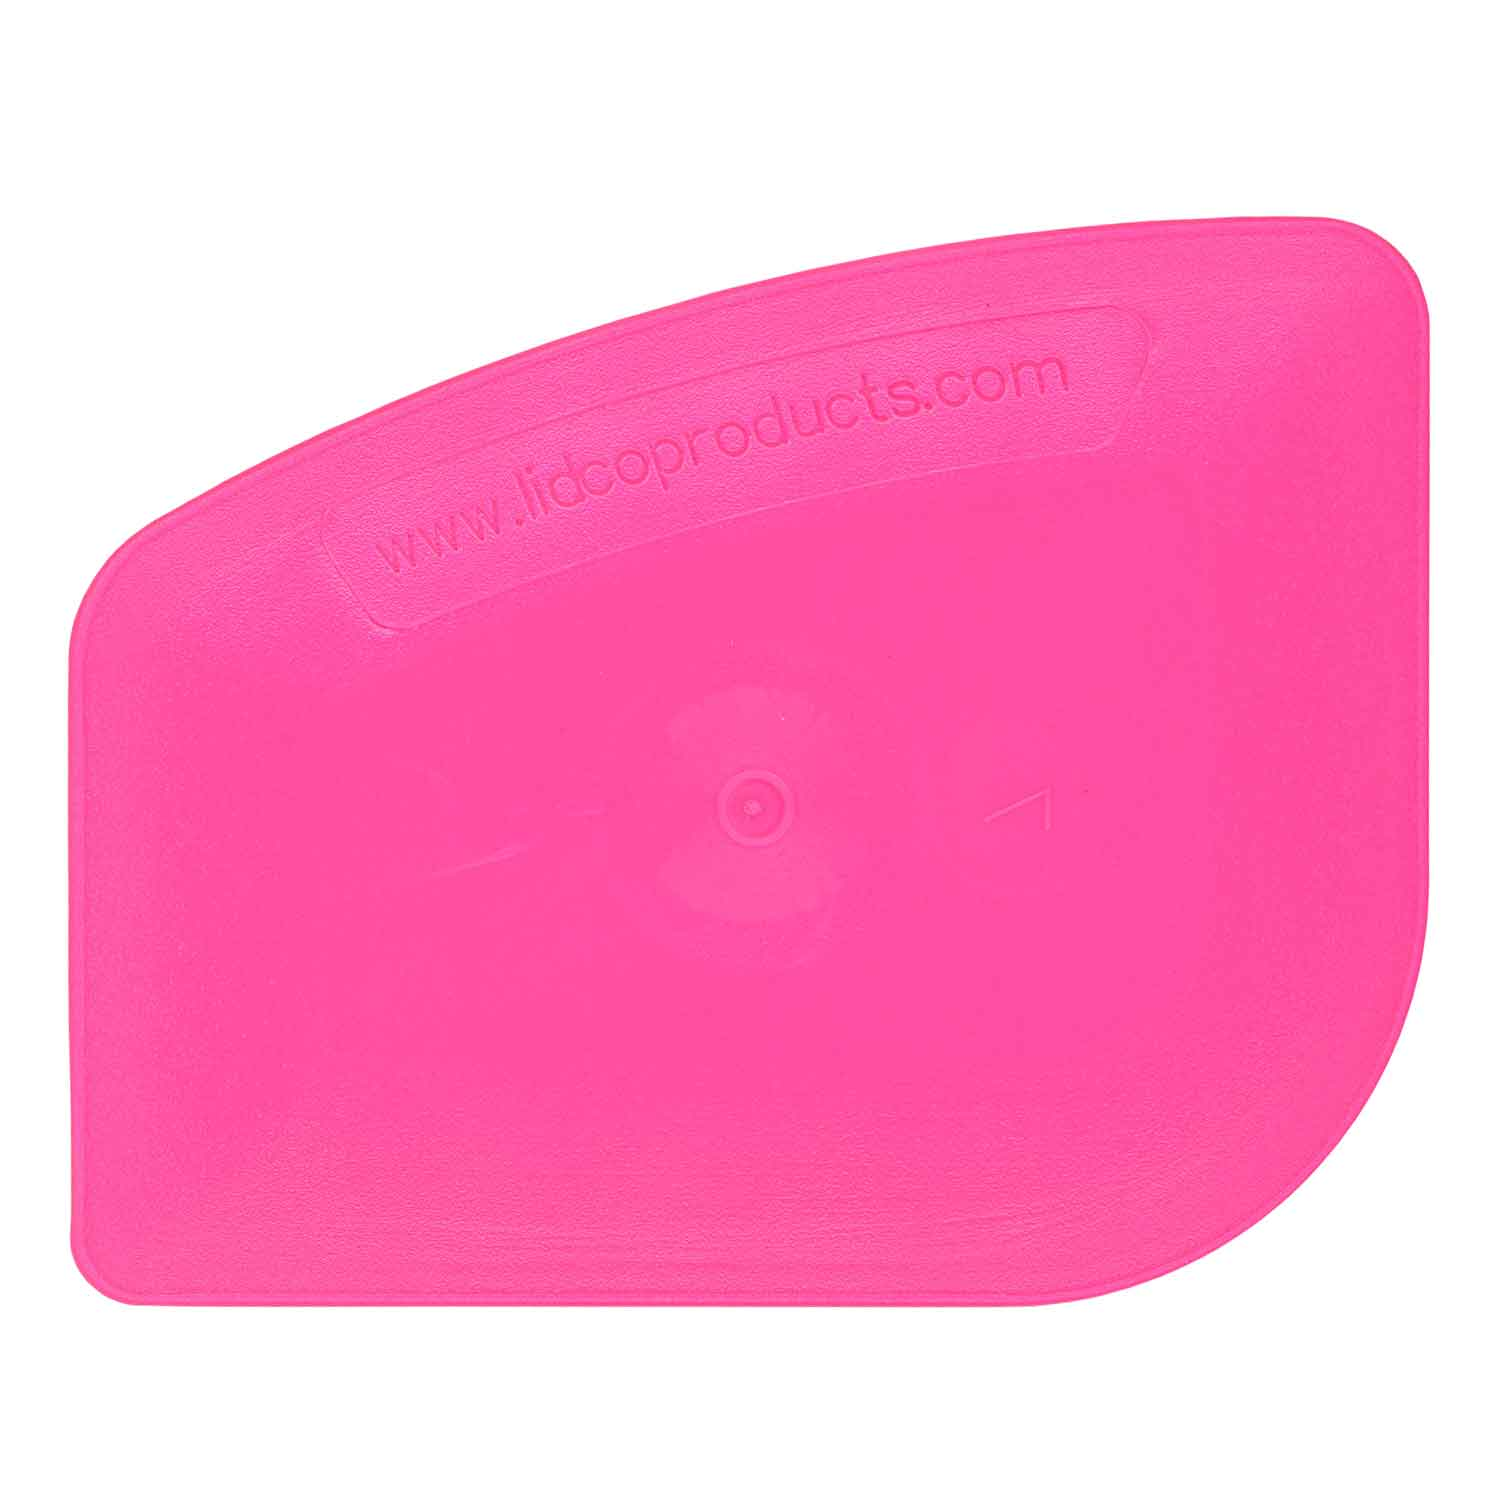 Lidco Pink Chizzler Squeegee Gm Crafts